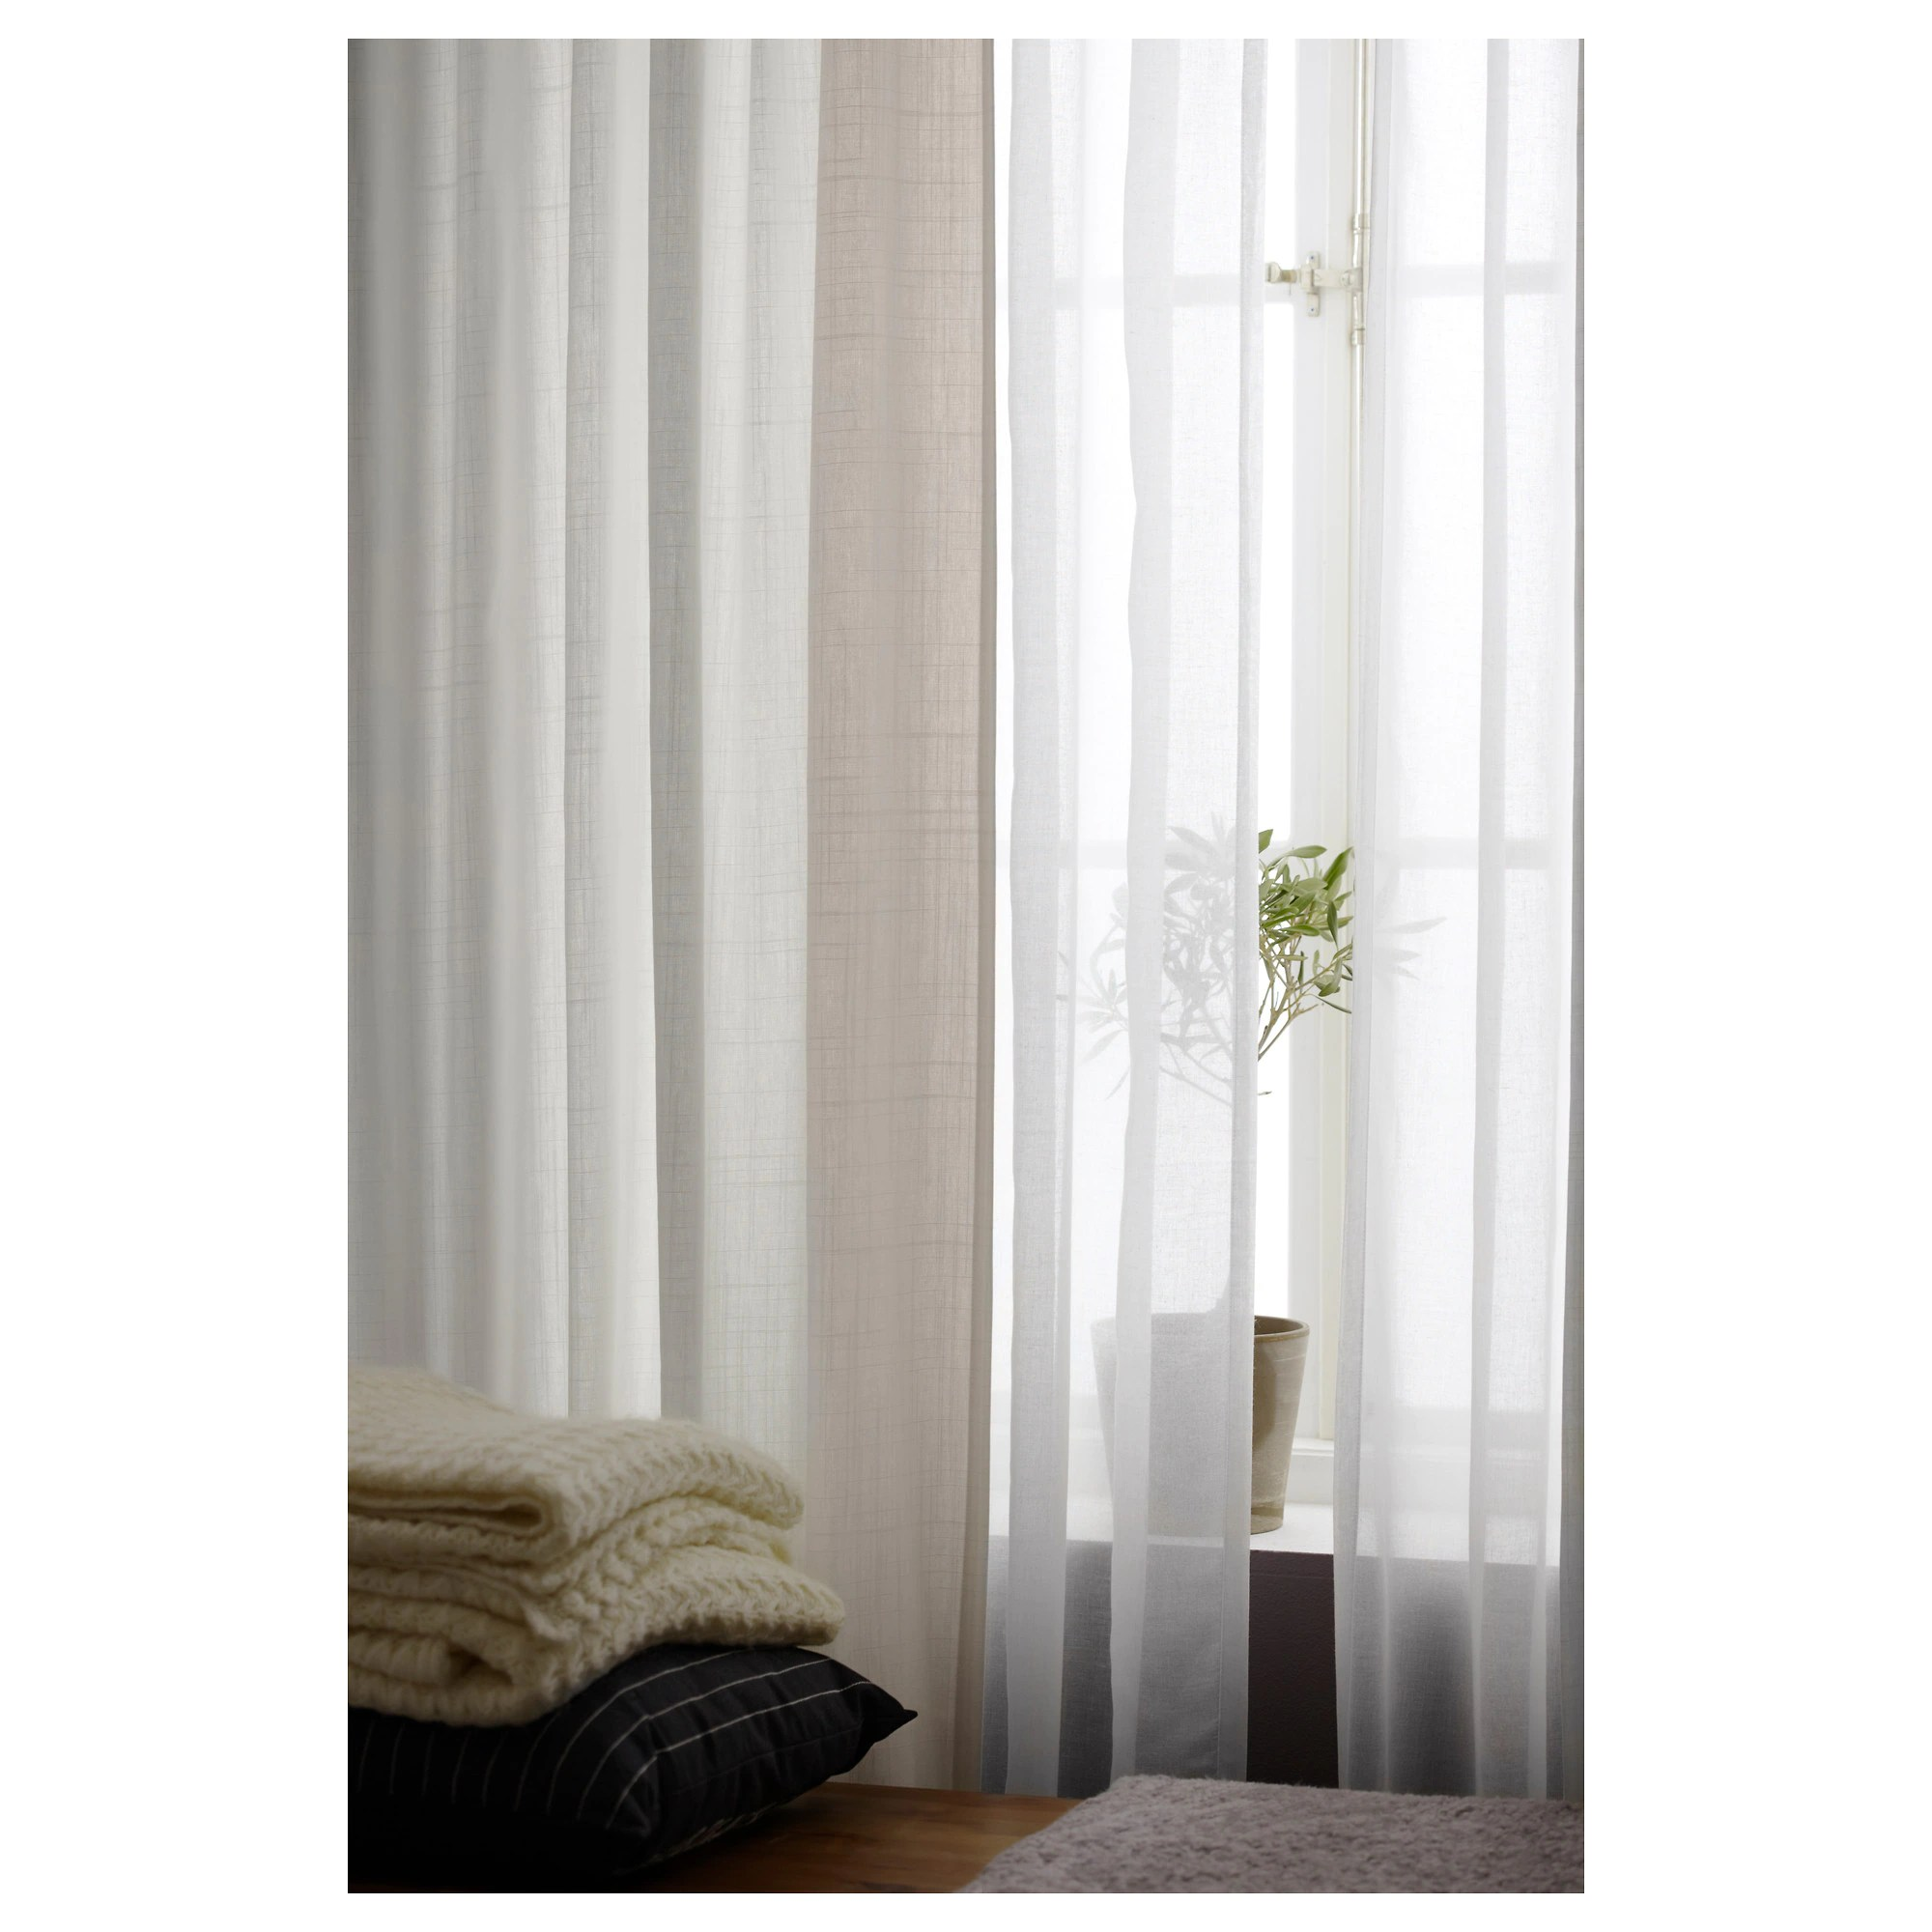 105 Inch Curtains Ritva Curtains With Tie Backs 1 Pair White